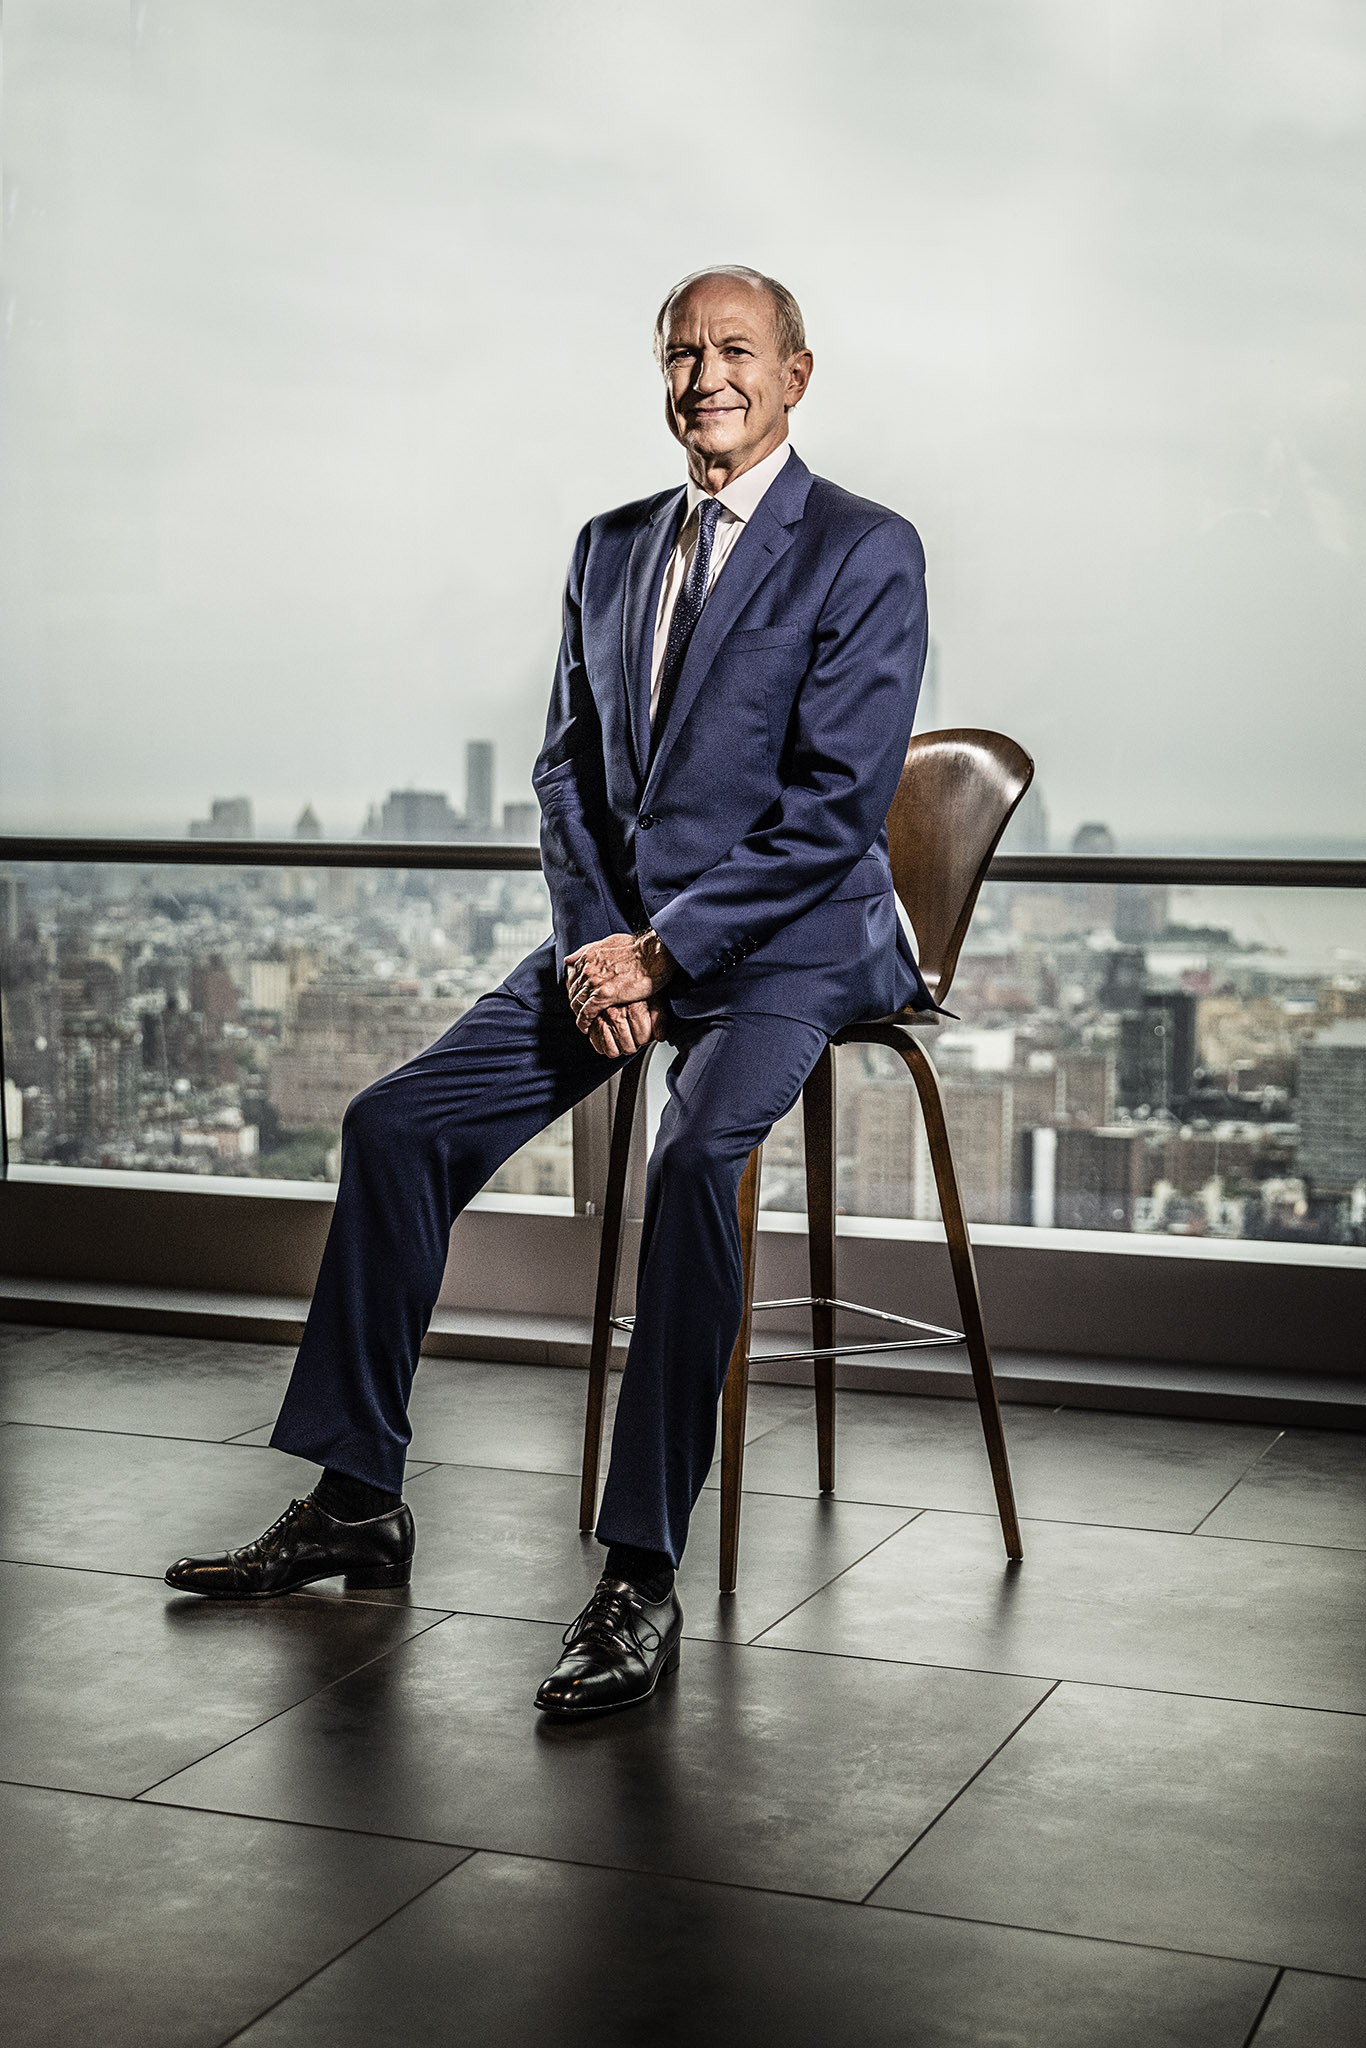 Jean-Paul Agon at the L'Oreal office in Hudson Yards, New York.